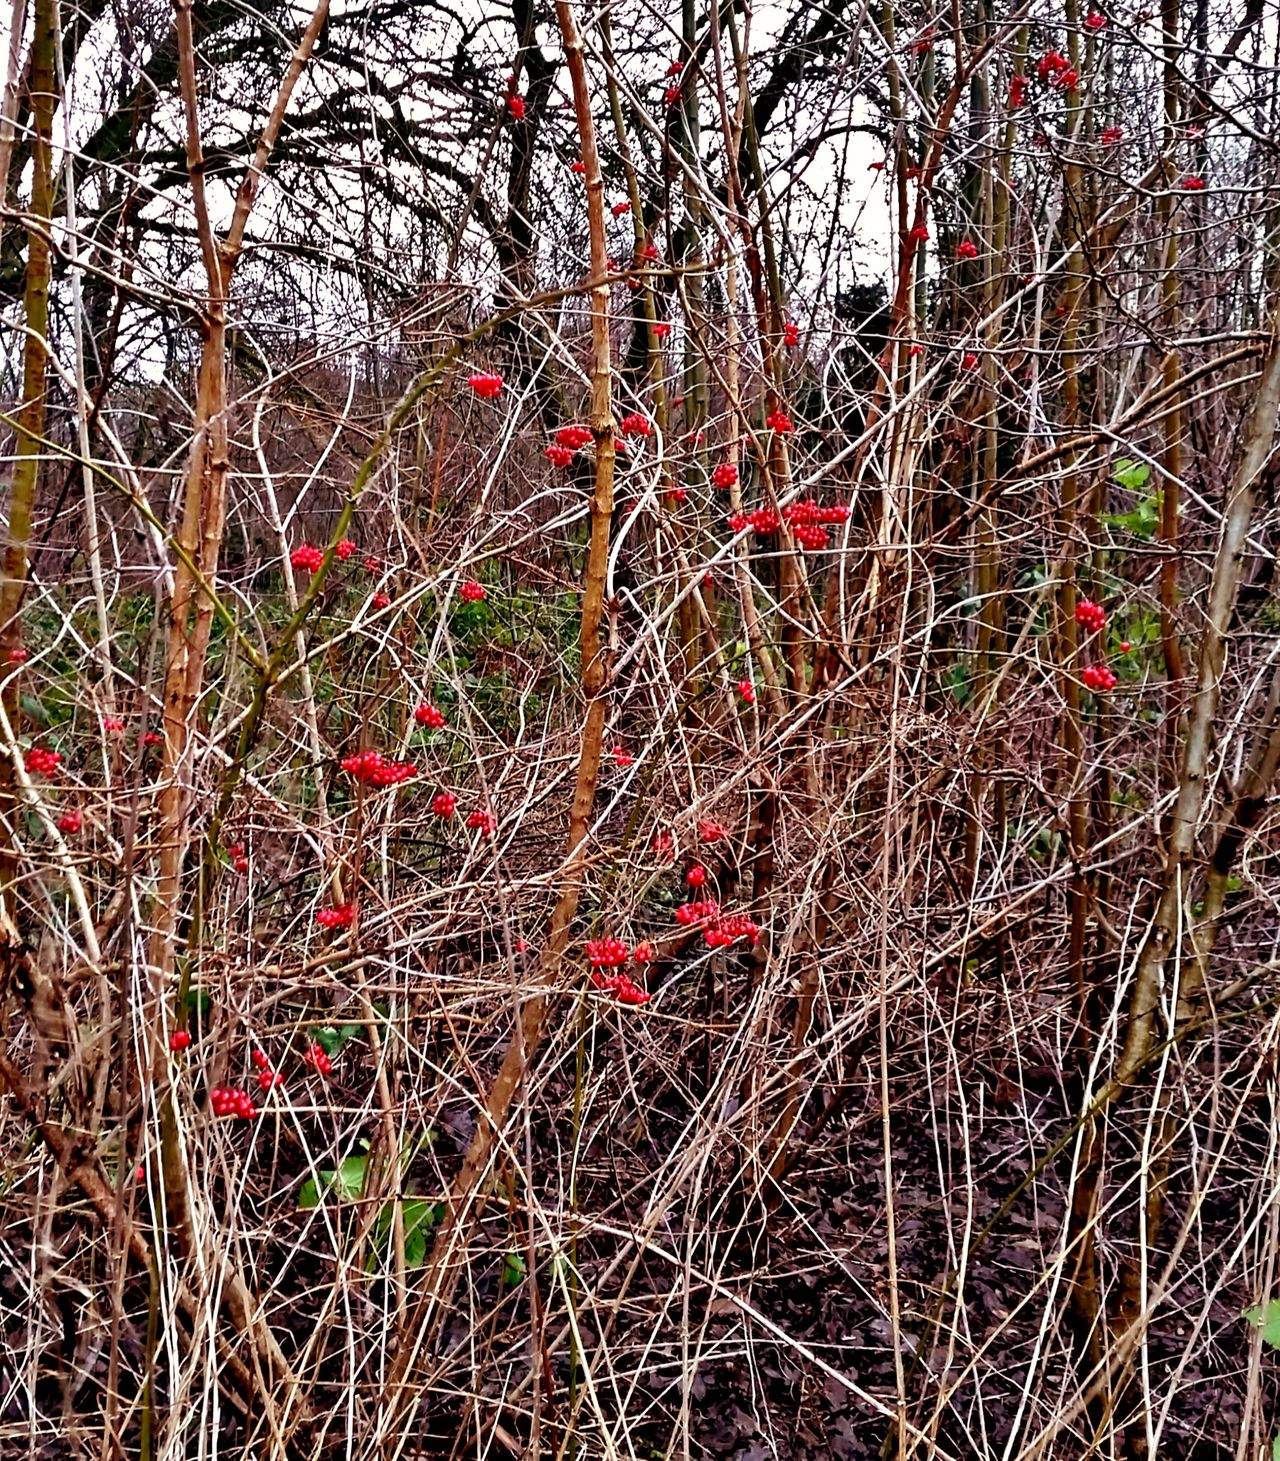 Bush Berrys Red Color Beauty In Nature Outdoor Photography No People